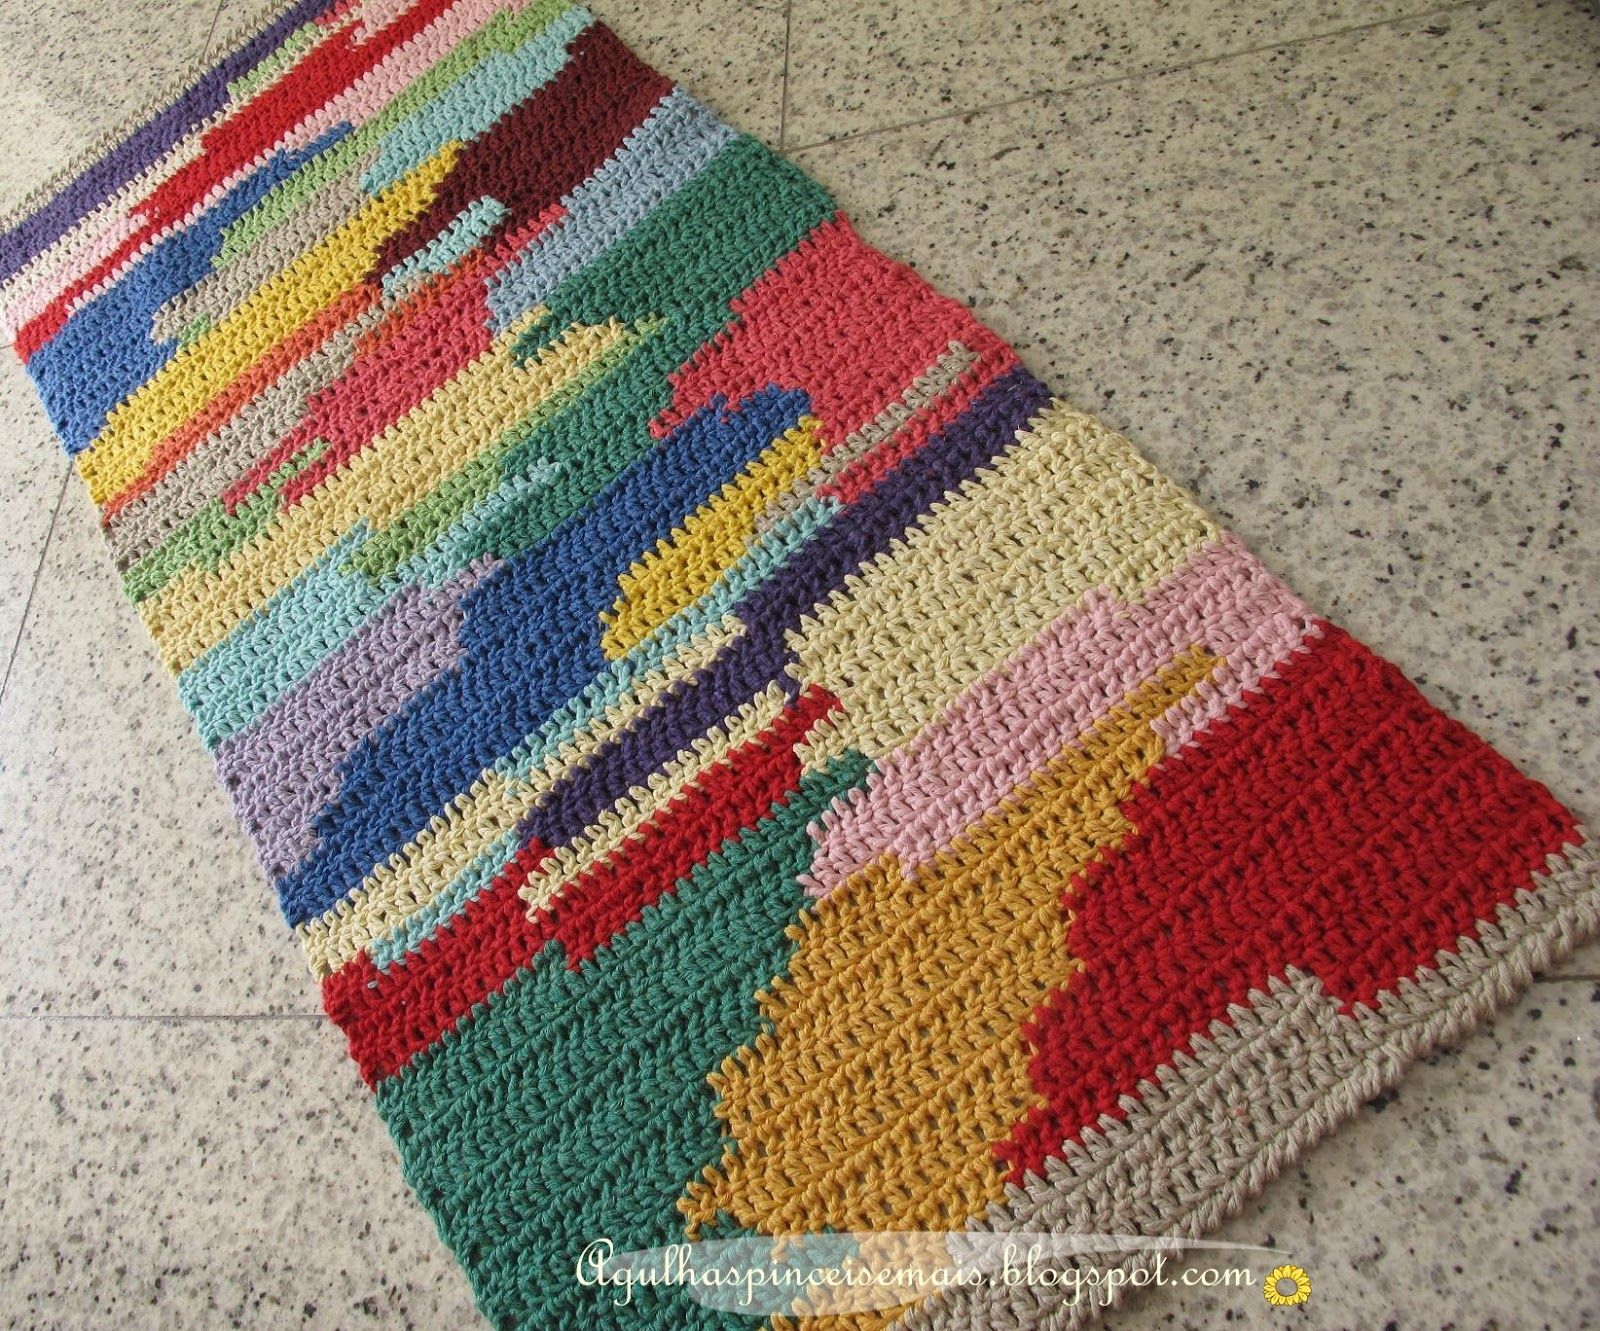 Rug example-no pattern